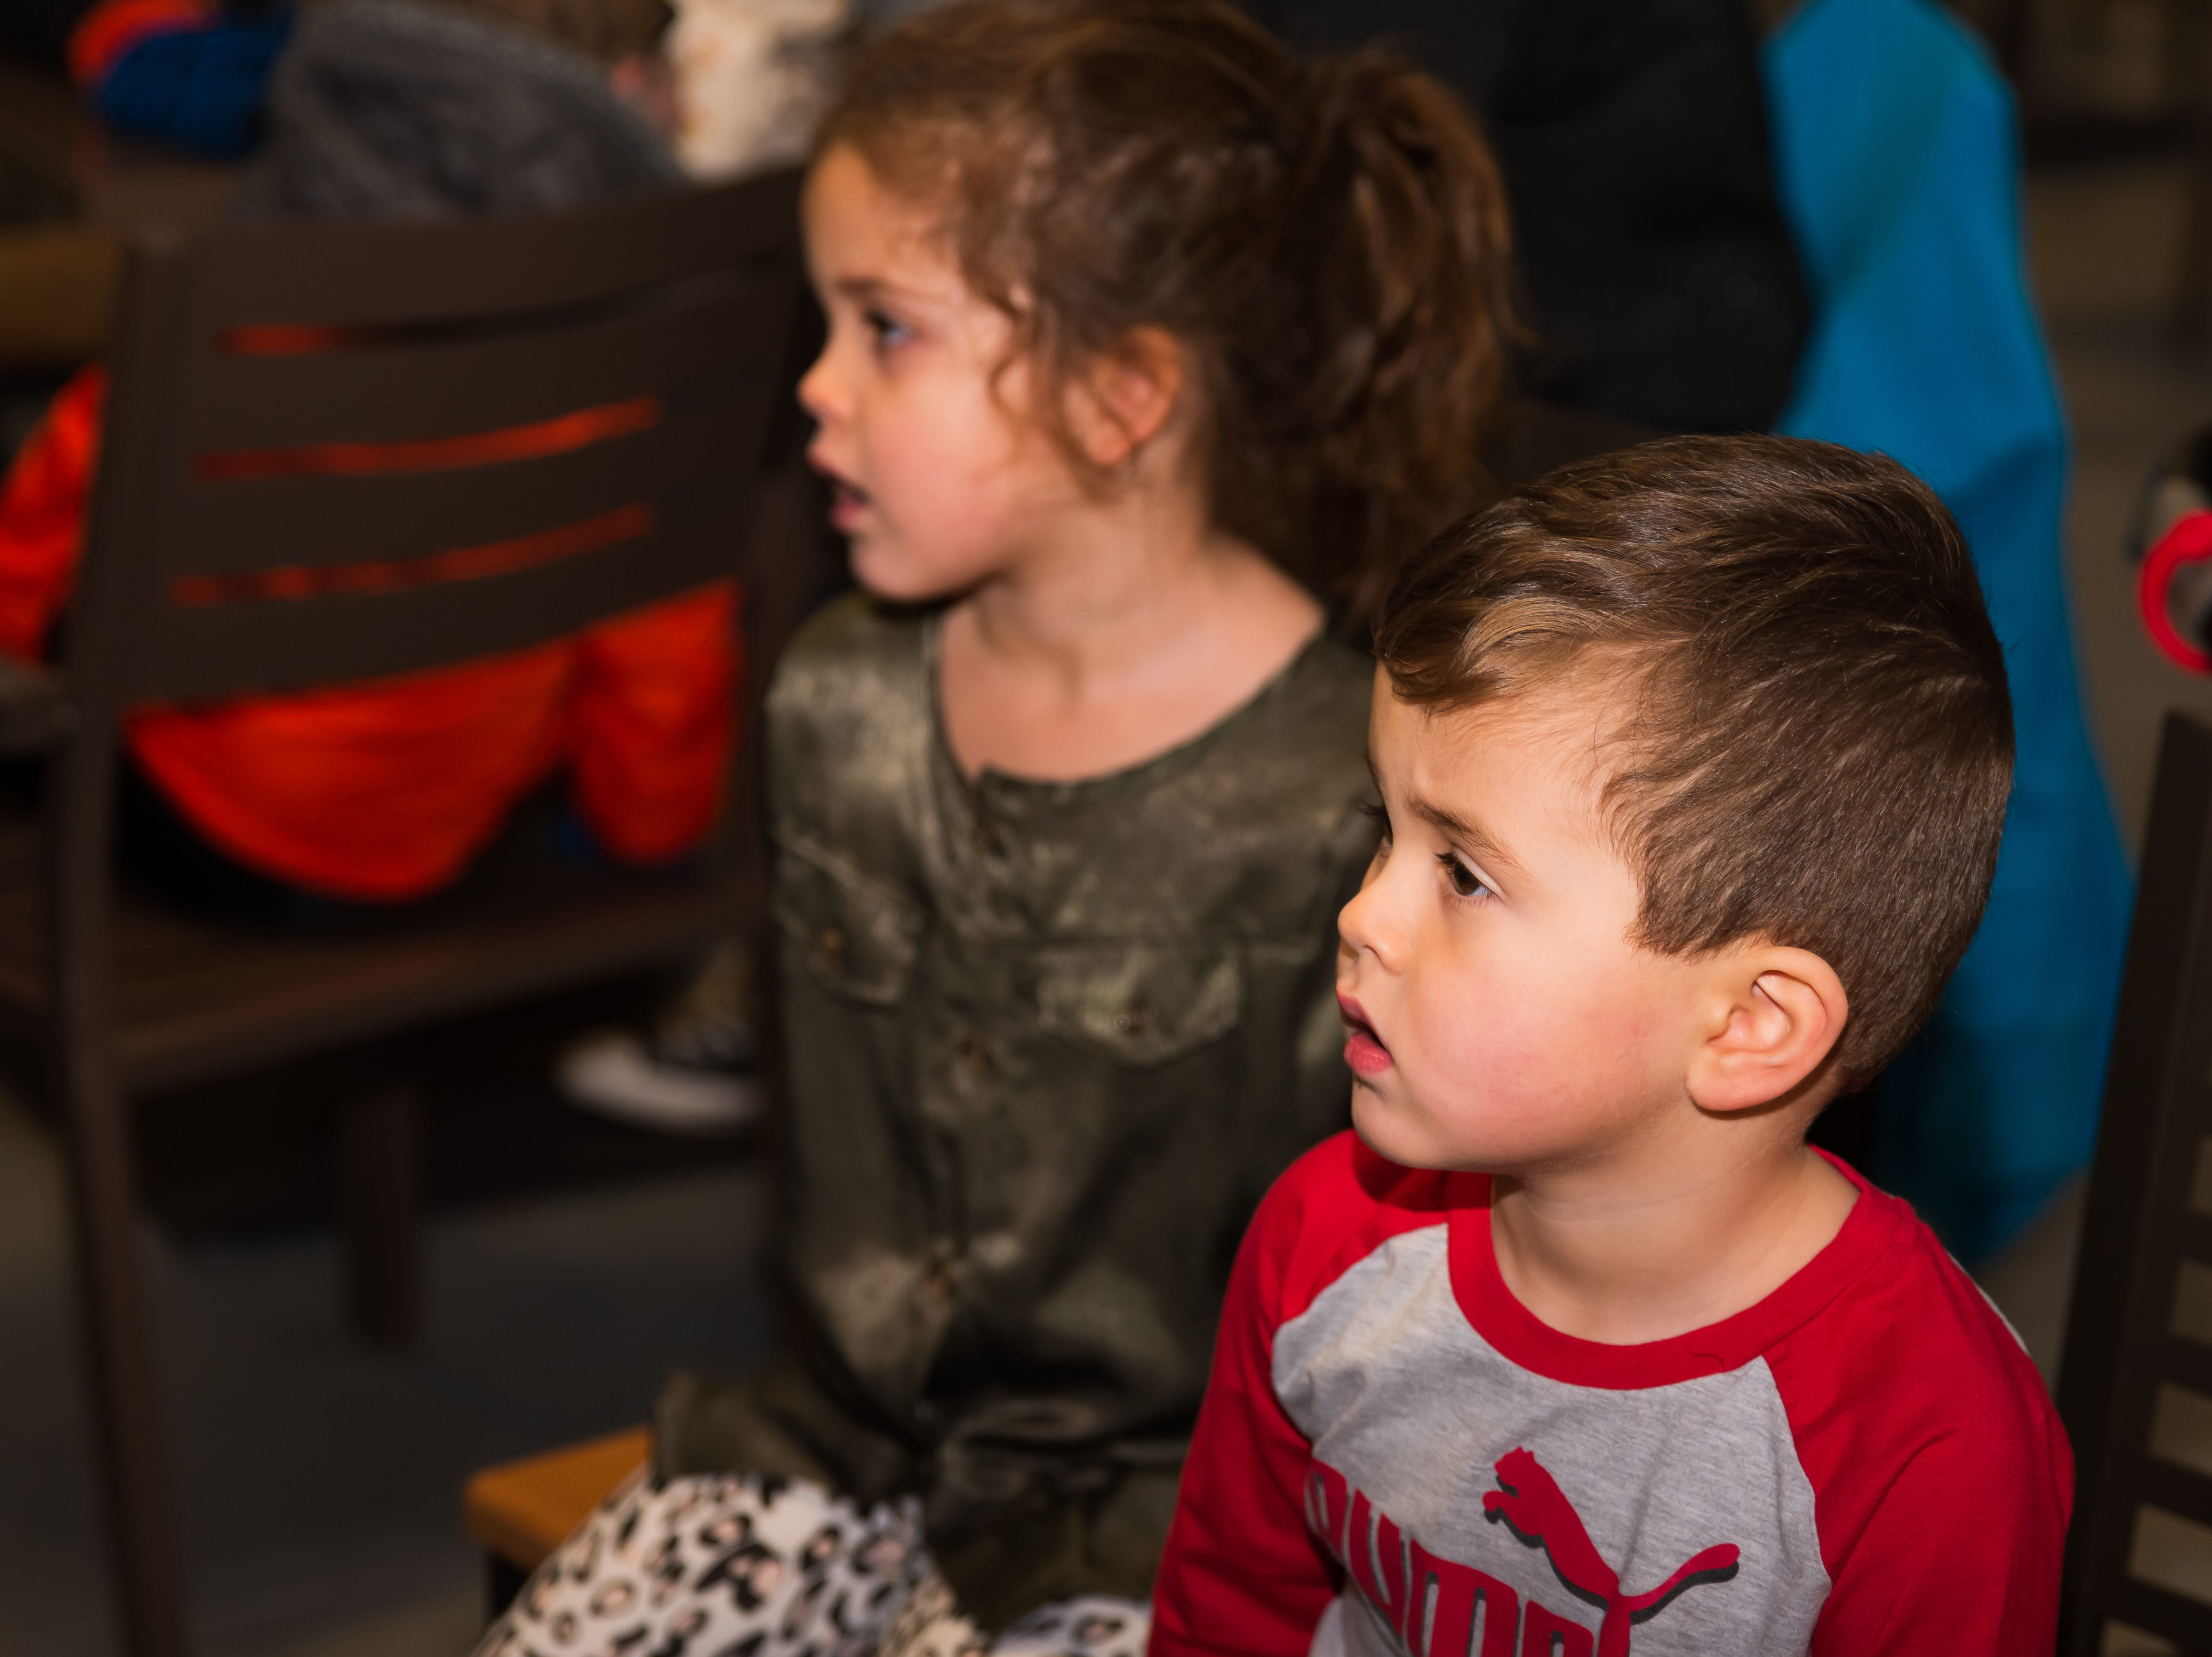 Louden, 3, and Anora Stout, 4, both of Altoona, watch the experiments Wednesday, March 20, 2019, during a Science Center program at the Outlets of Des Moines in Altoona.